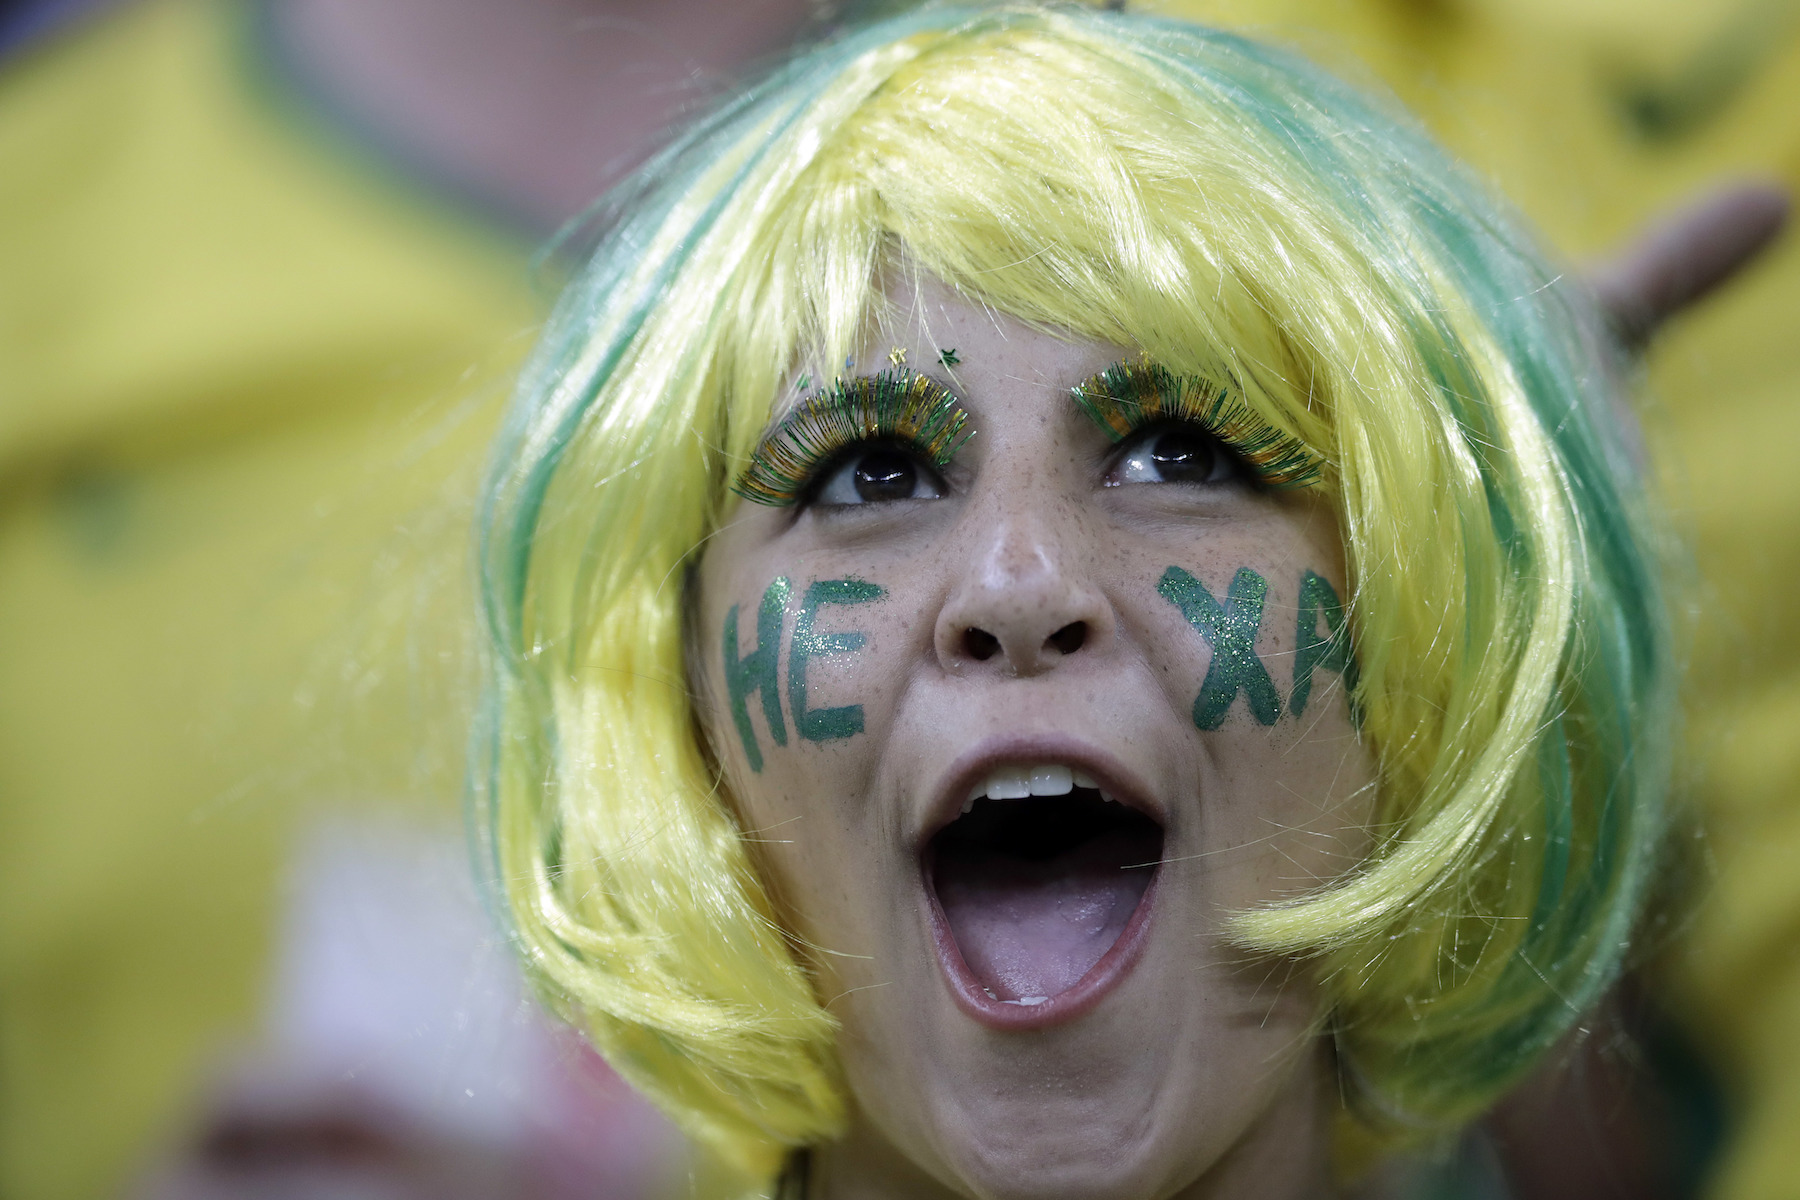 <div class='meta'><div class='origin-logo' data-origin='AP'></div><span class='caption-text' data-credit='AP Photo/Felipe Dana'>A soccer fan cheers ahead of the group E match between Brazil and Switzerland at the 2018 soccer World Cup in the Rostov Arena in Rostov-on-Don, Russia, Sunday, June 17, 2018.</span></div>